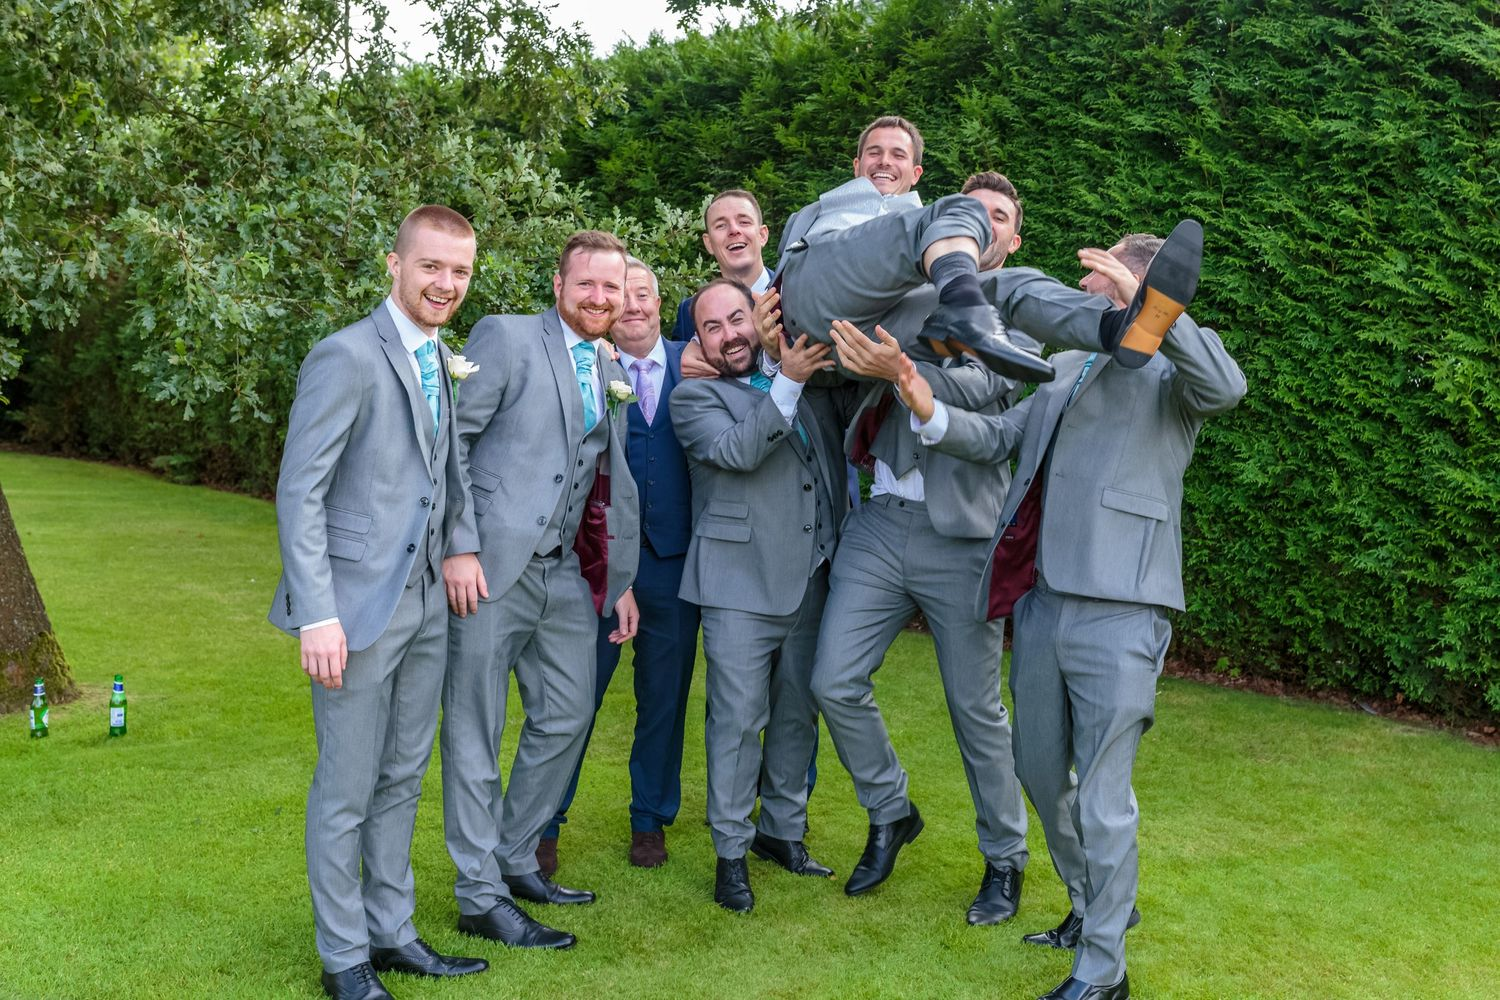 groomsmen lift the groom in the air in the garden at west tower wedding venue